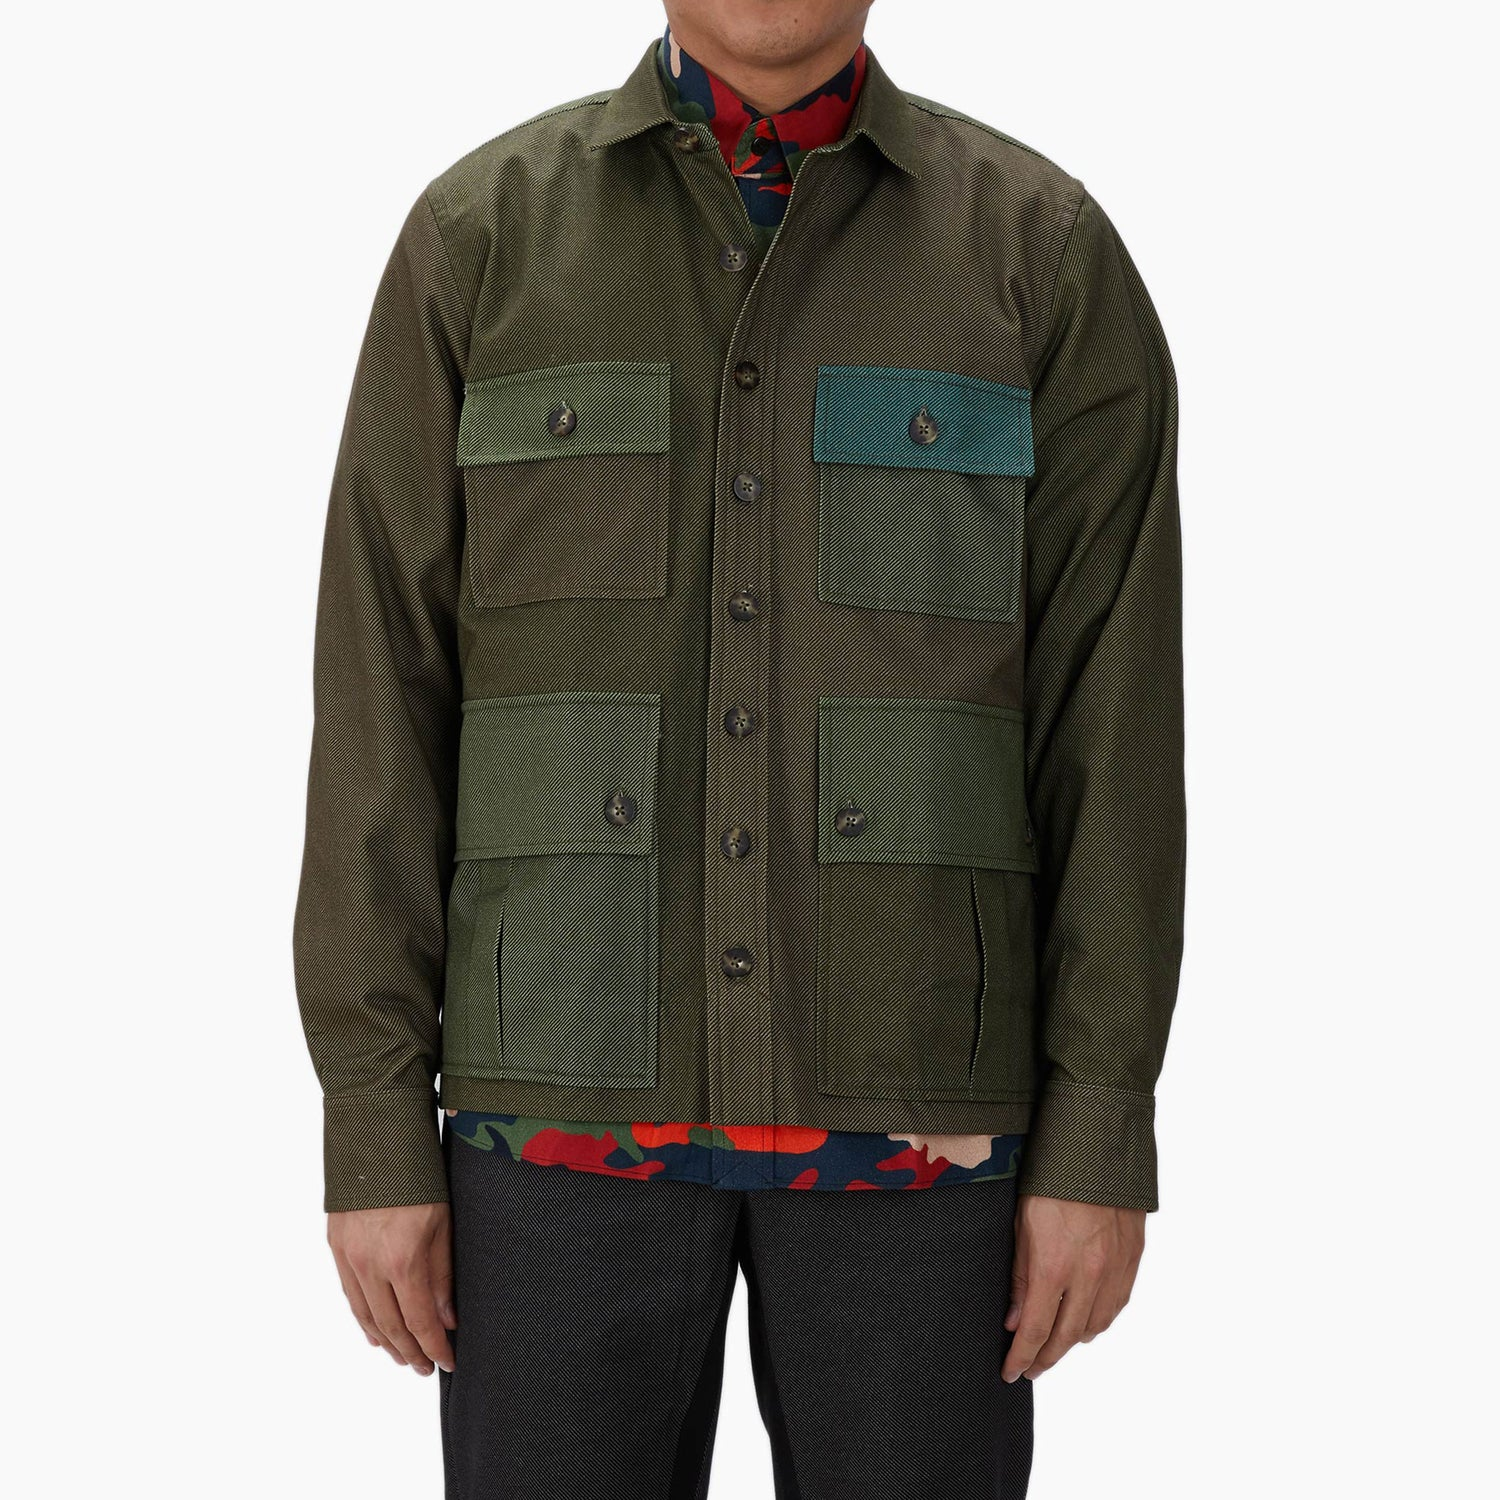 The Green Mixed Twill Driving Jacket